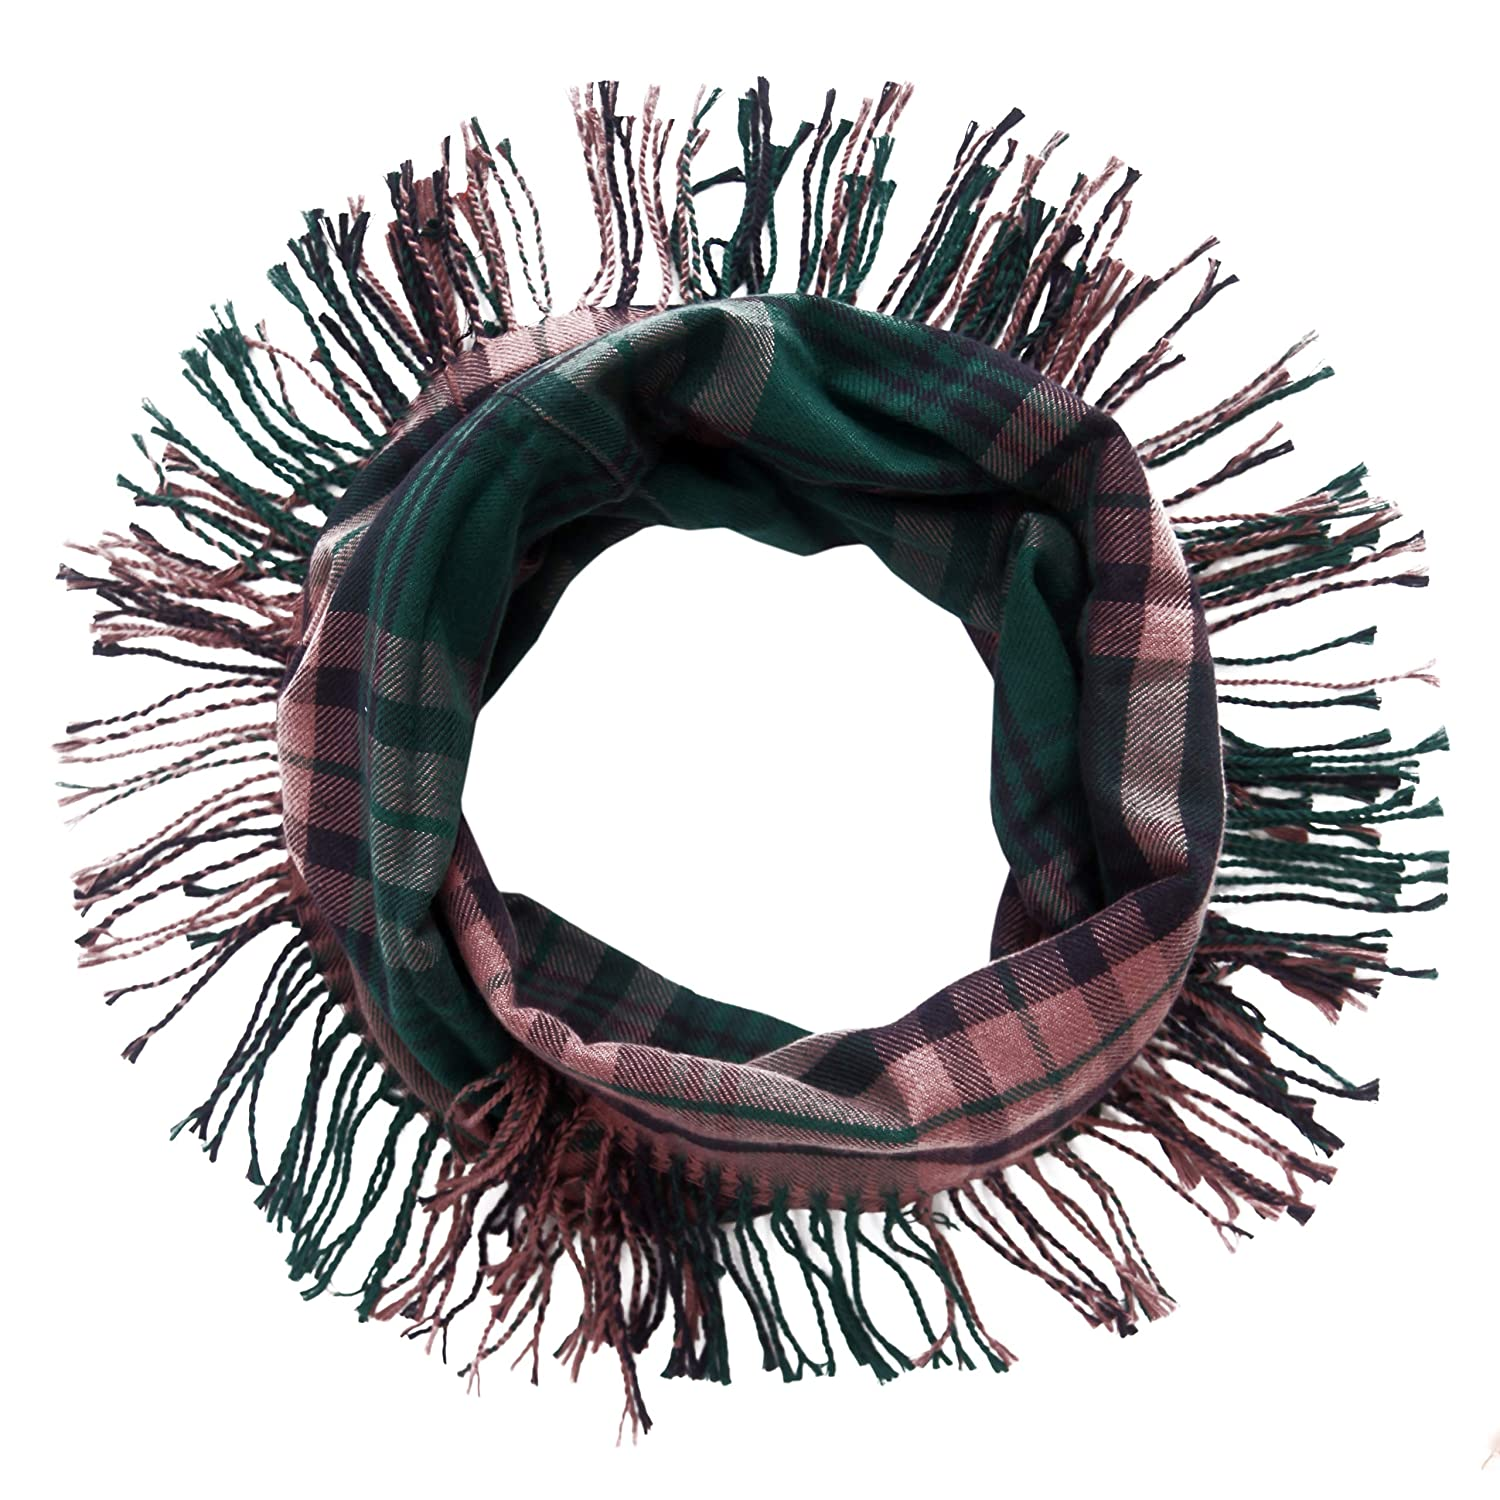 Missshorthair Women Plaid Infinity Scarf Winter Fashion Scarves With Square D Qo Qwikgard 15 Amp Singlepole Gfci Circuit Breaker Fringes A1865c 10